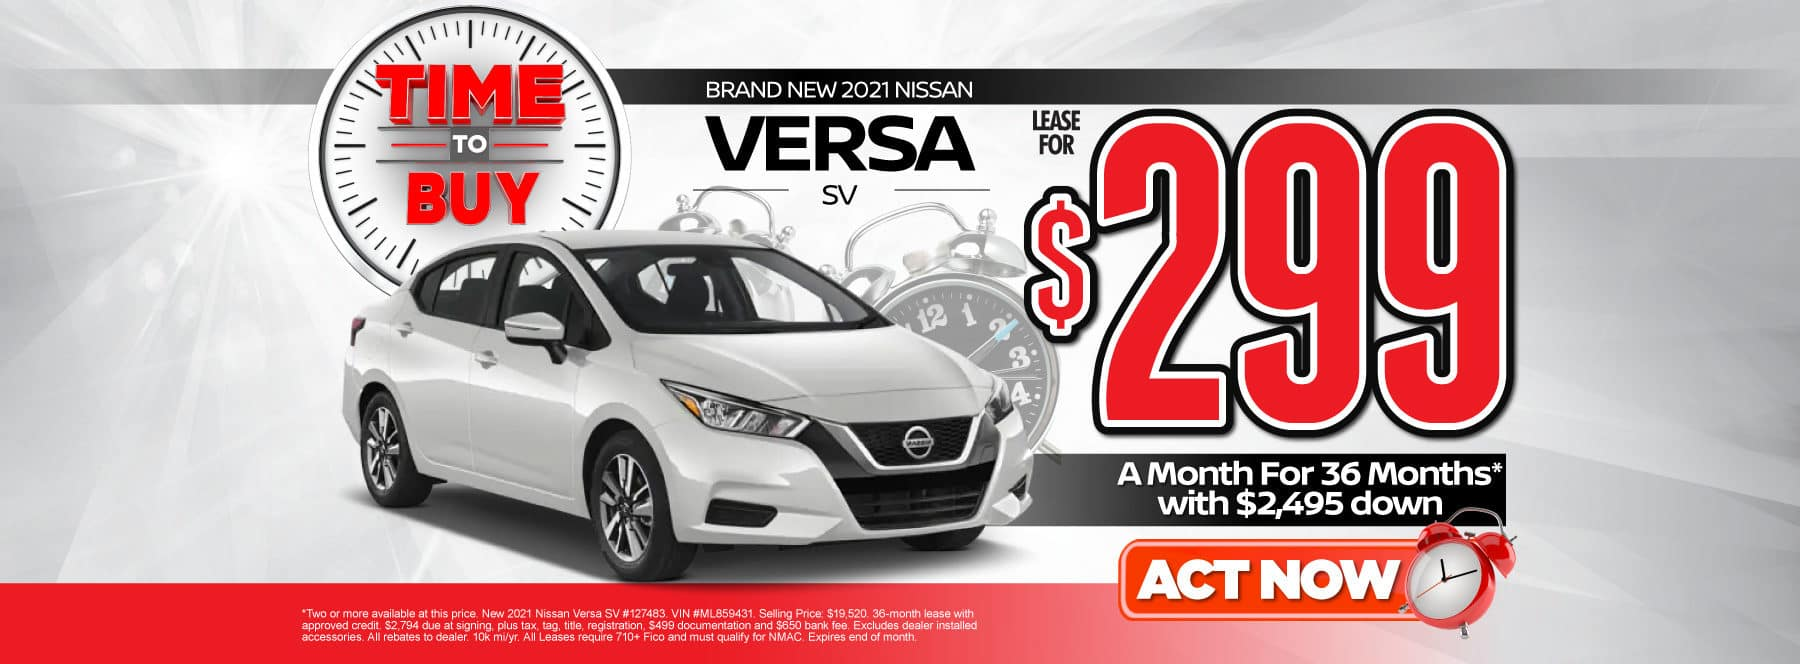 New 2021 Nissan Versa | Lease for $299 a month | Act Now